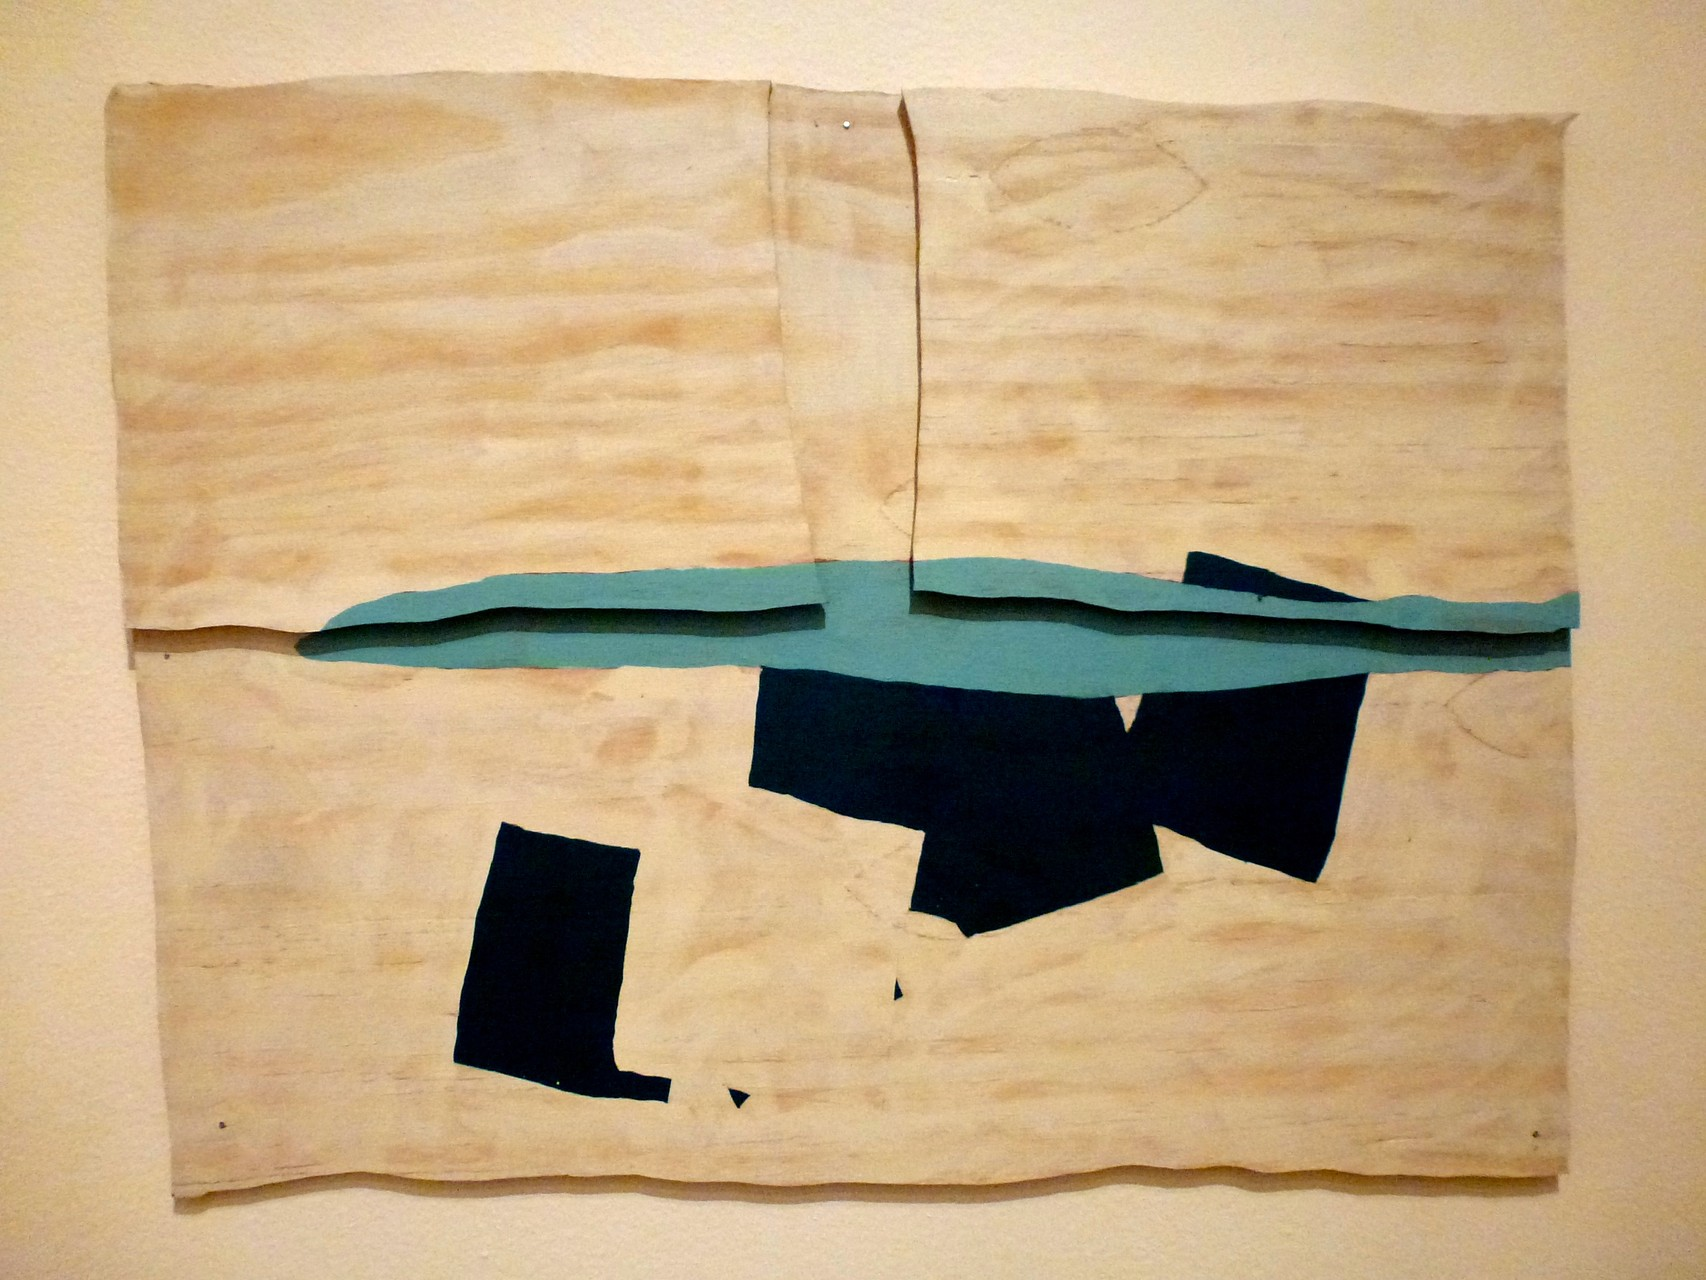 Richard Tuttle - New Mexico - New York D, #13 (1998)